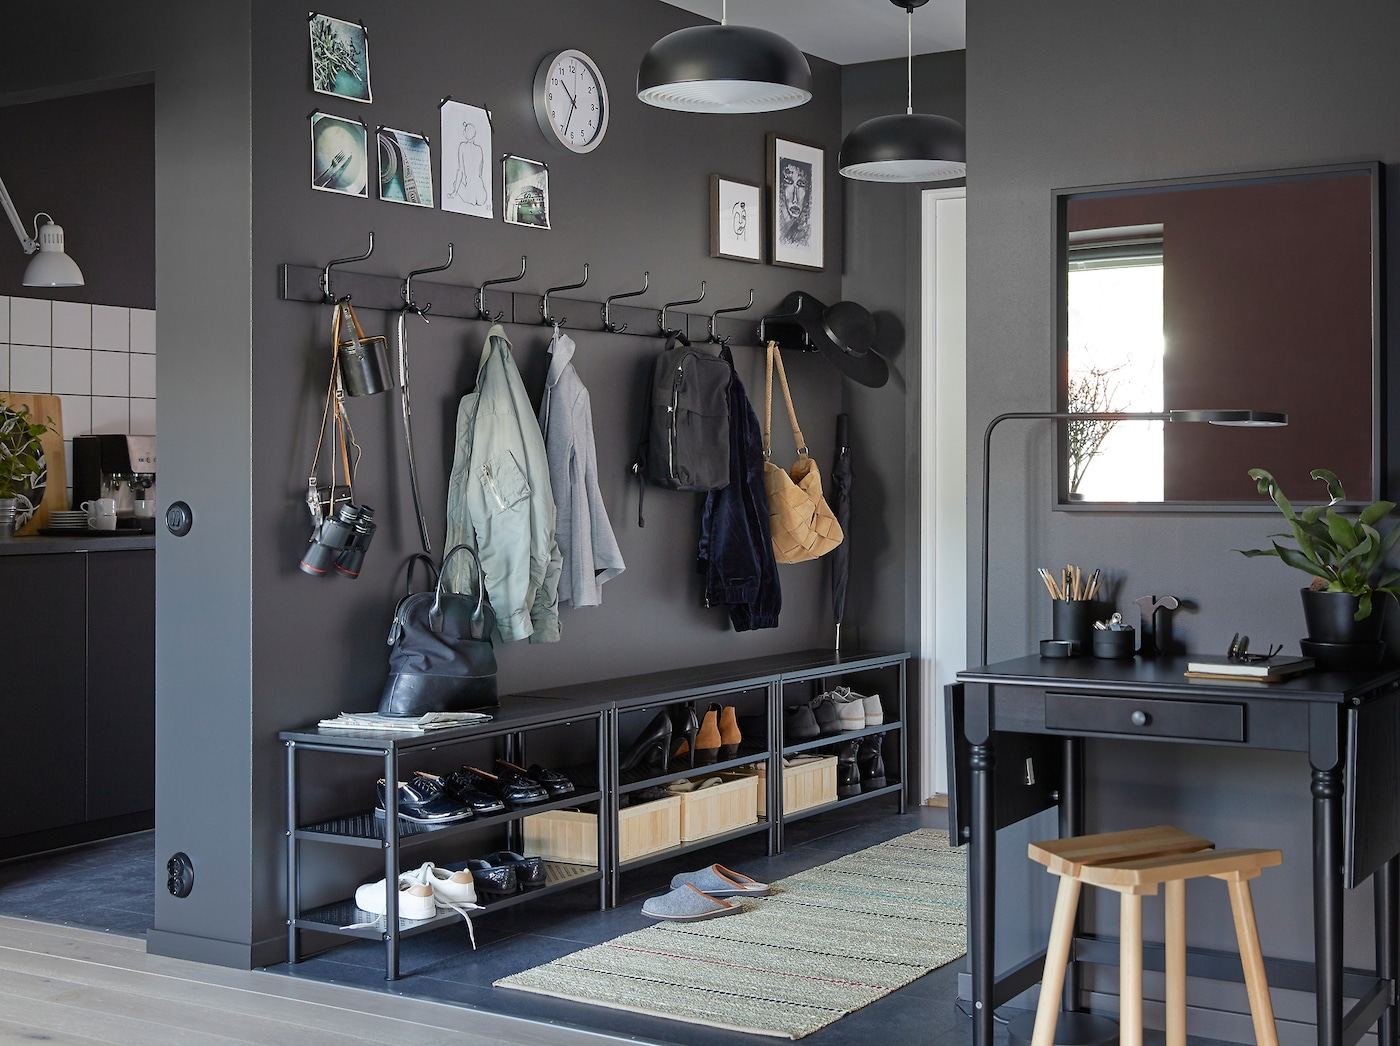 Combine three black PINNIG bench / shoe racks and three PINNIG rack with three hooks in a row against a dark grey wall to create plenty of storage in a narrow hallway.